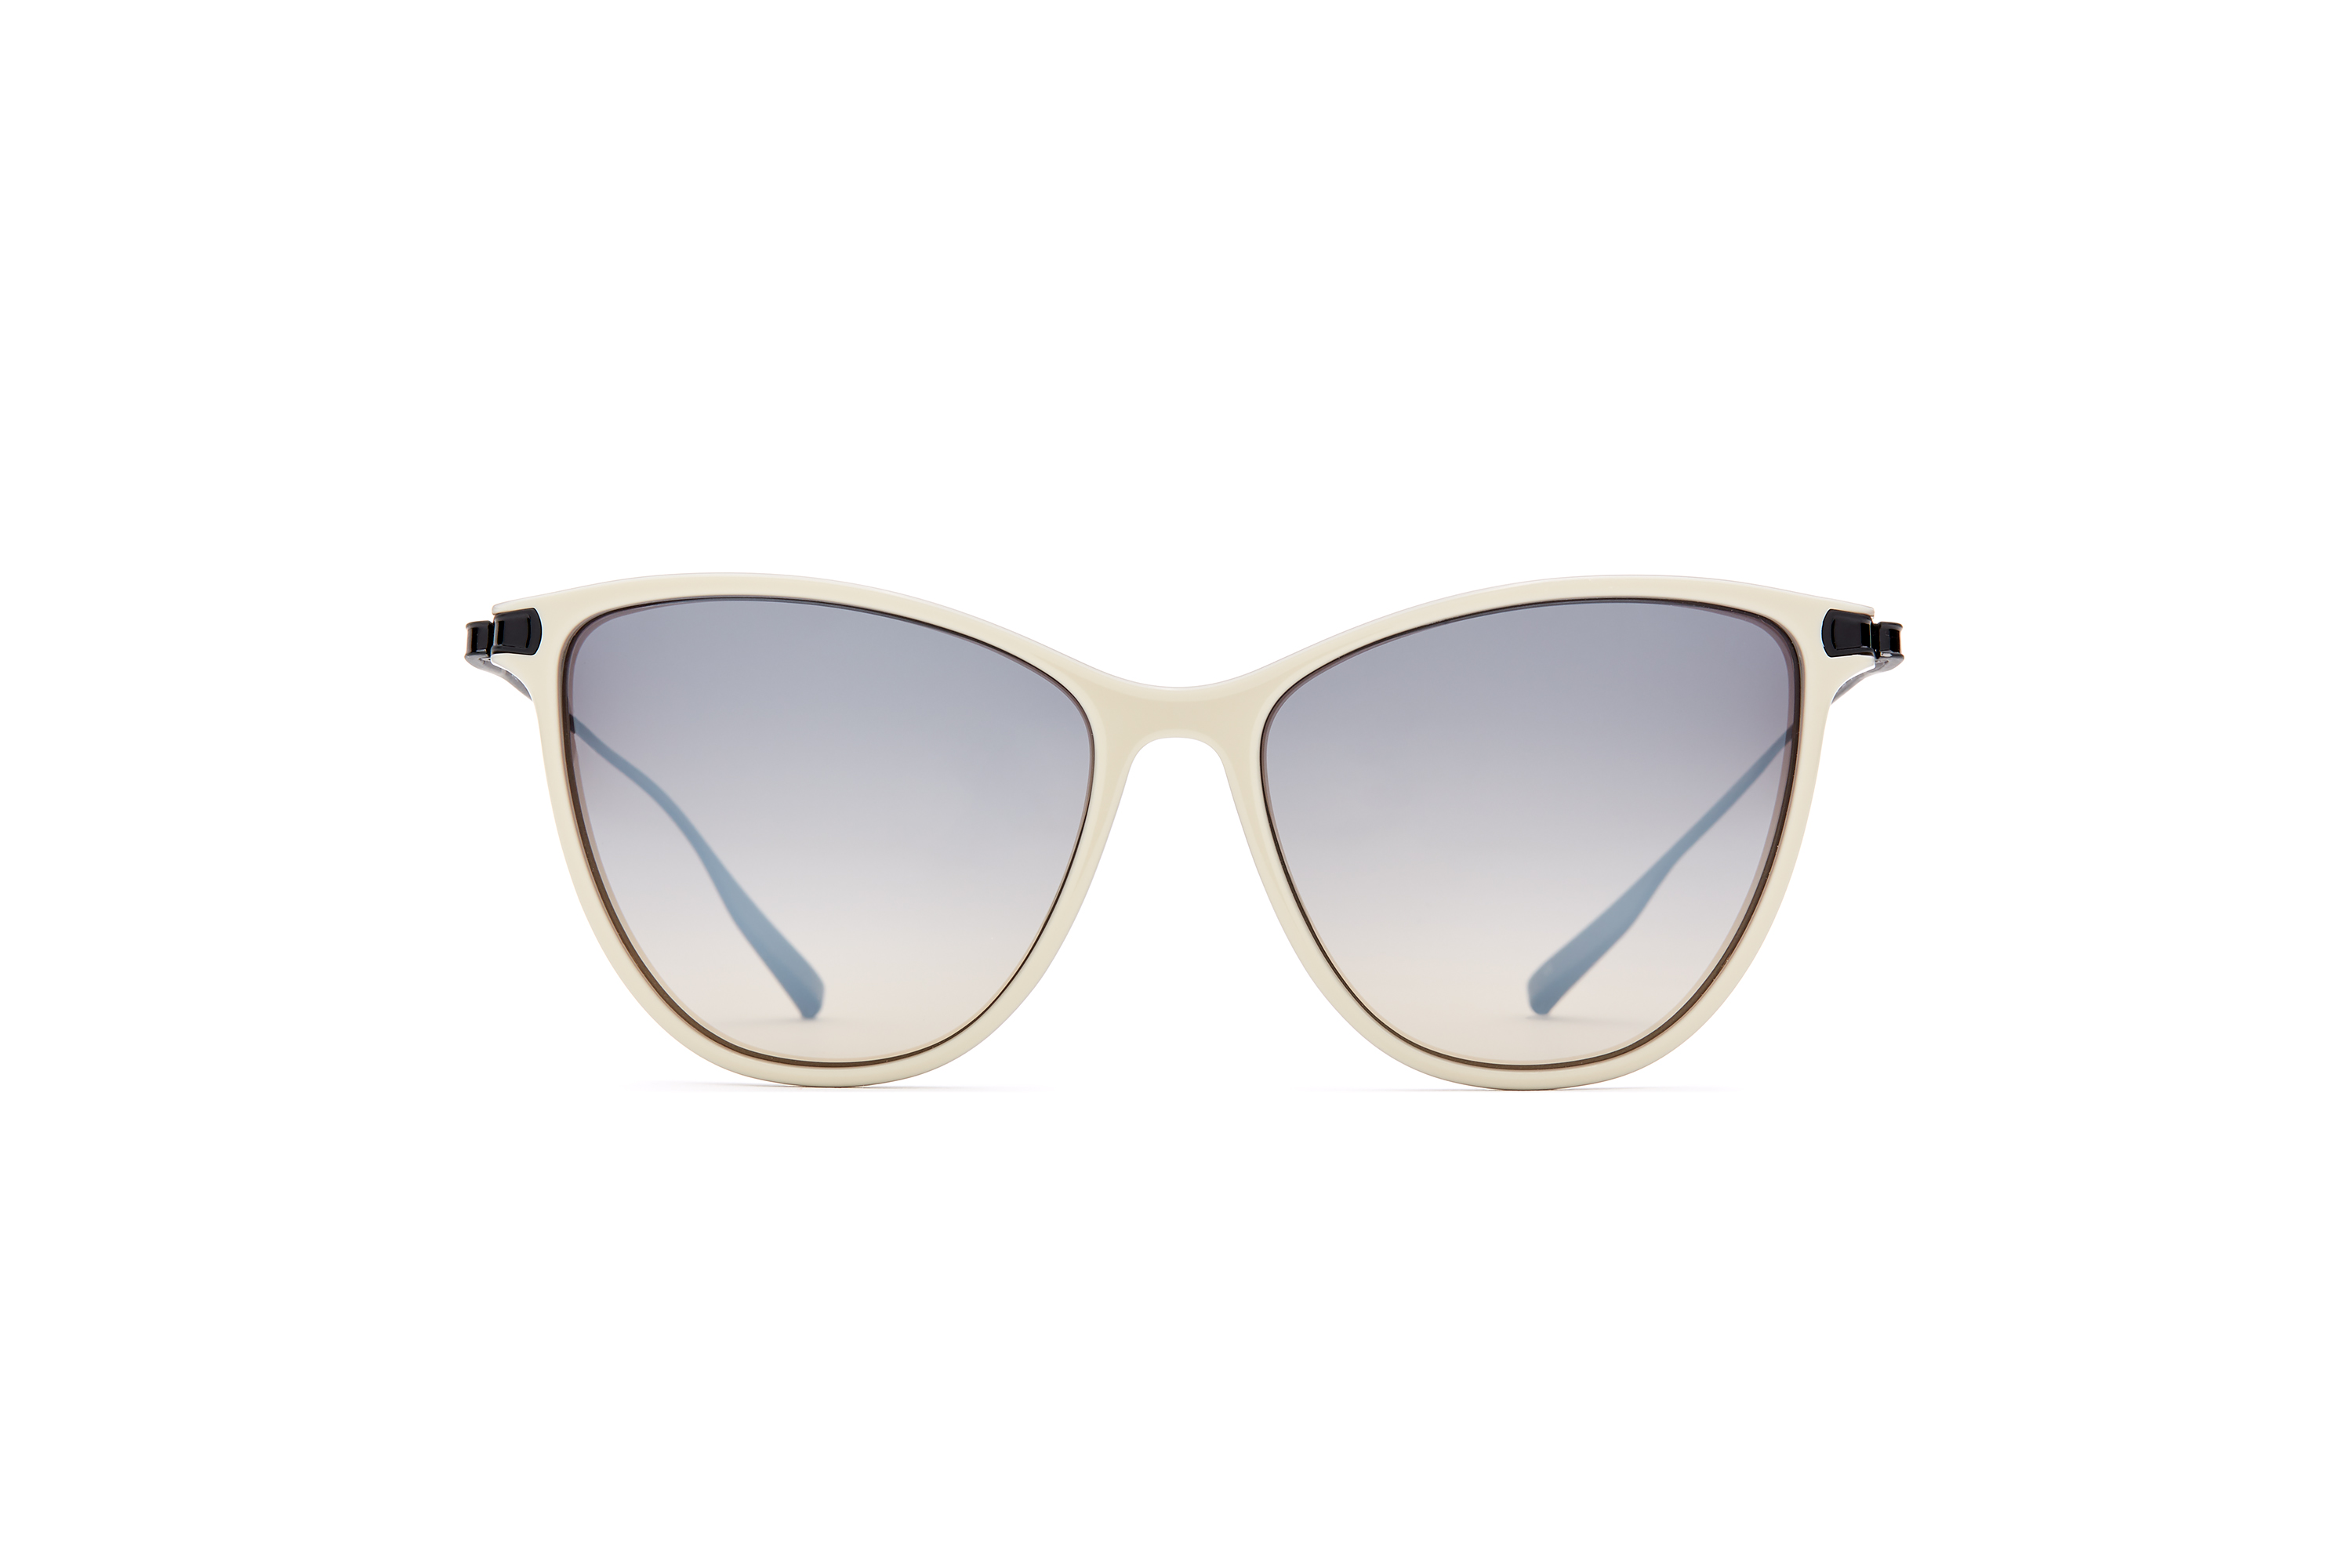 SALT. | frame: NIA | color: oyster grey